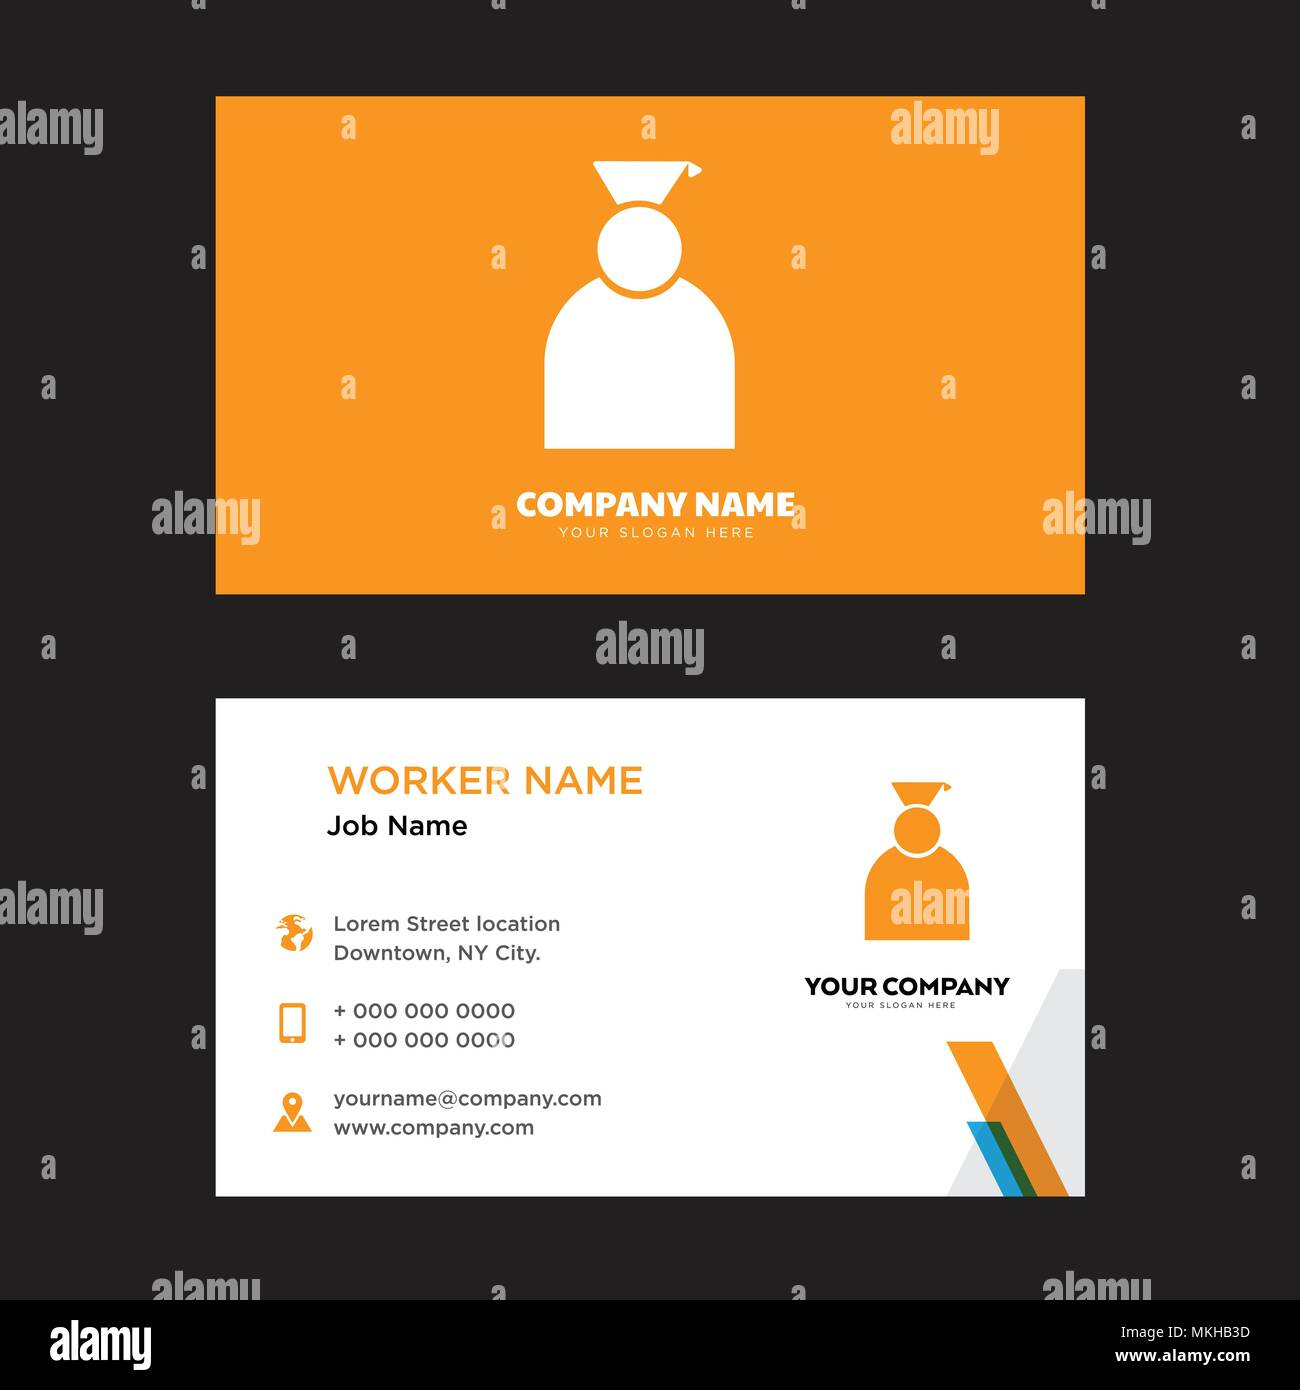 Graduate business card design template, Visiting for your company, Modern horizontal identity Card Vector Stock Vector